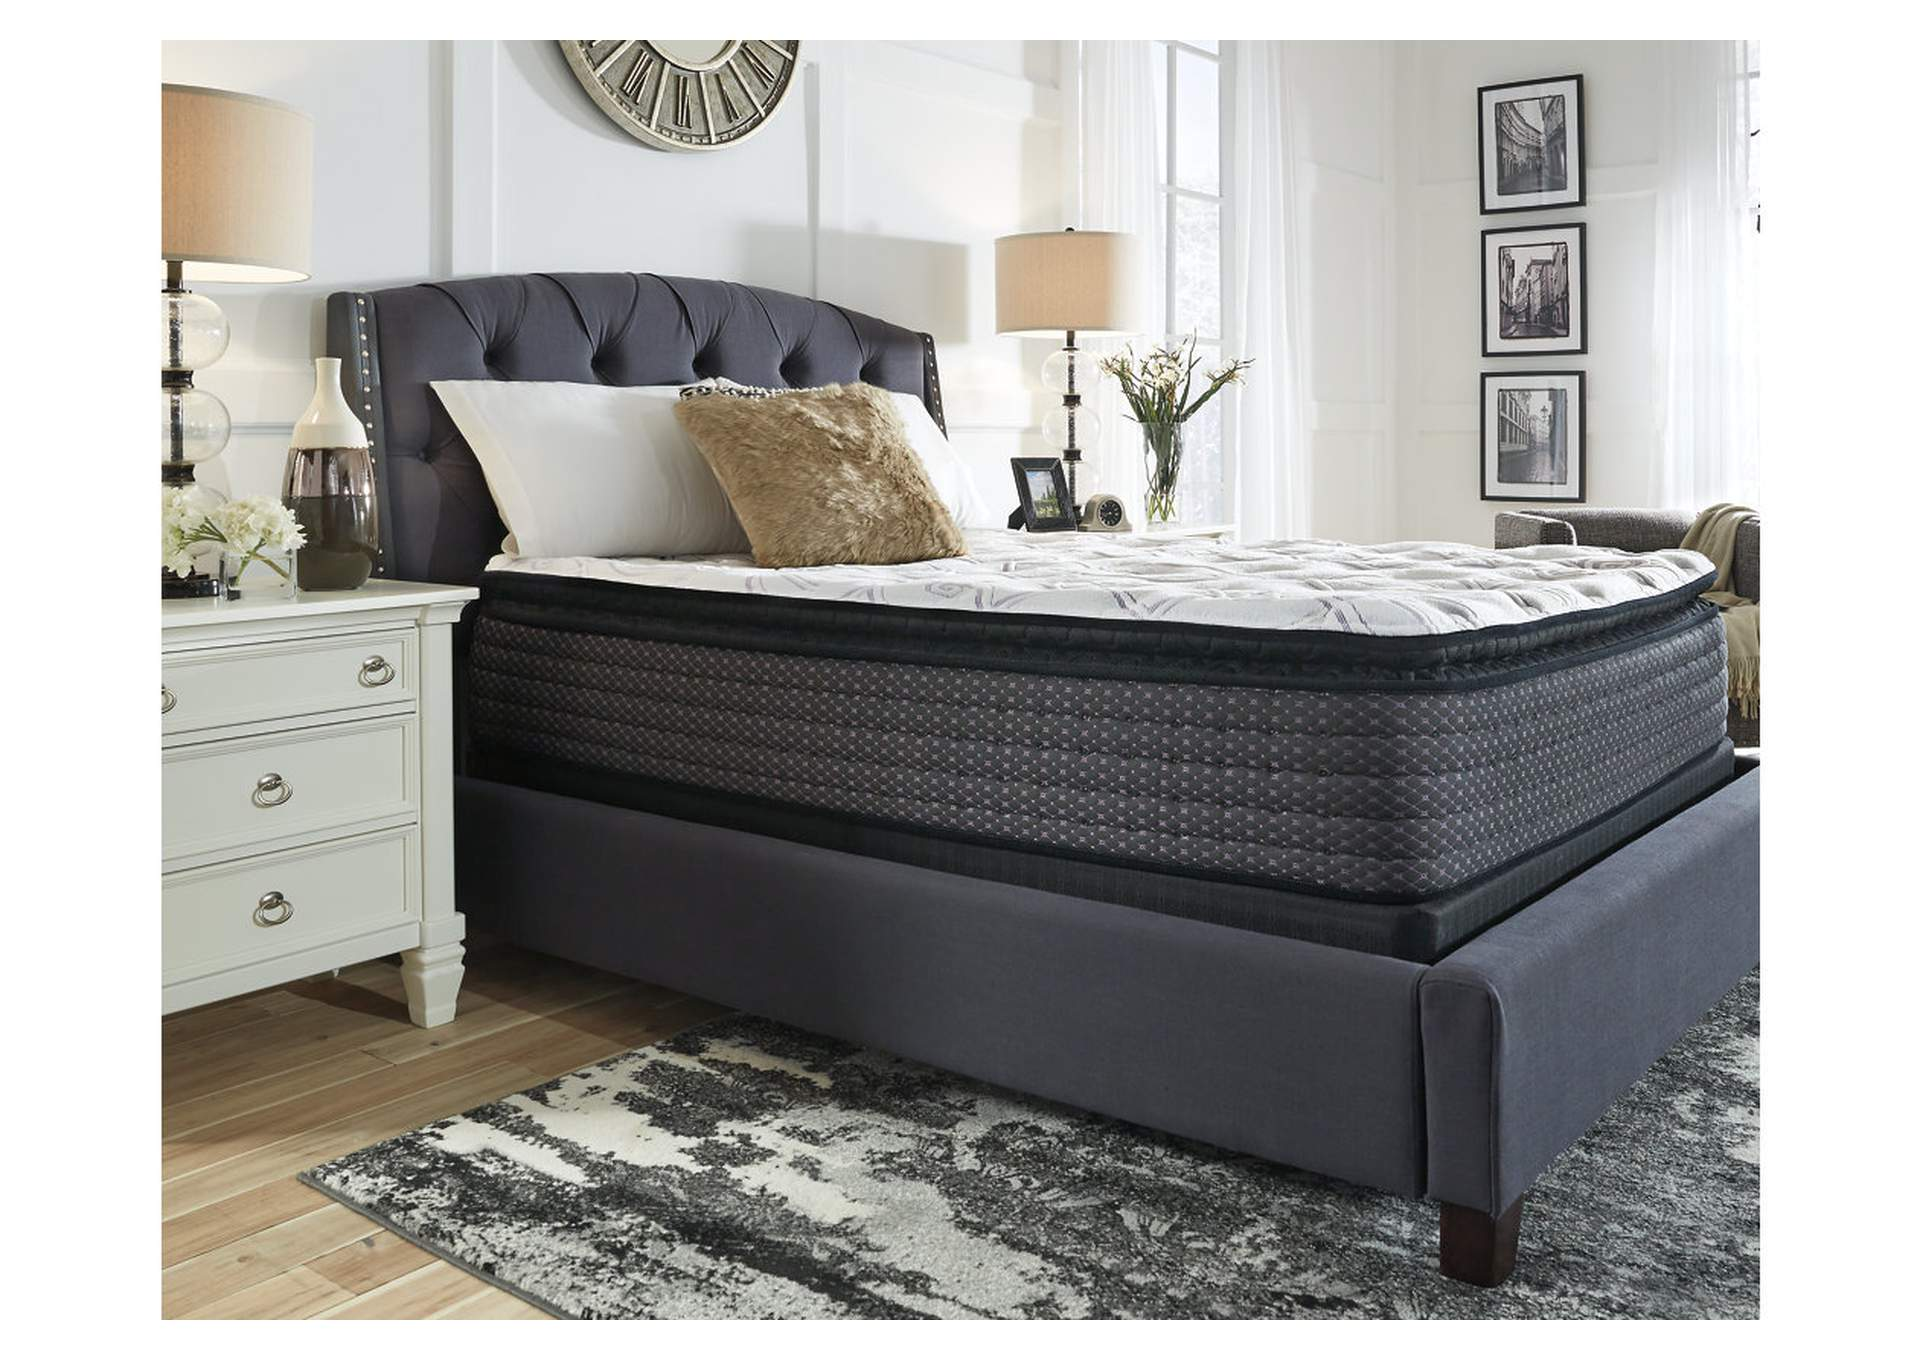 Limited Edition Pillowtop White Queen Mattress,Sierra Sleep by Ashley